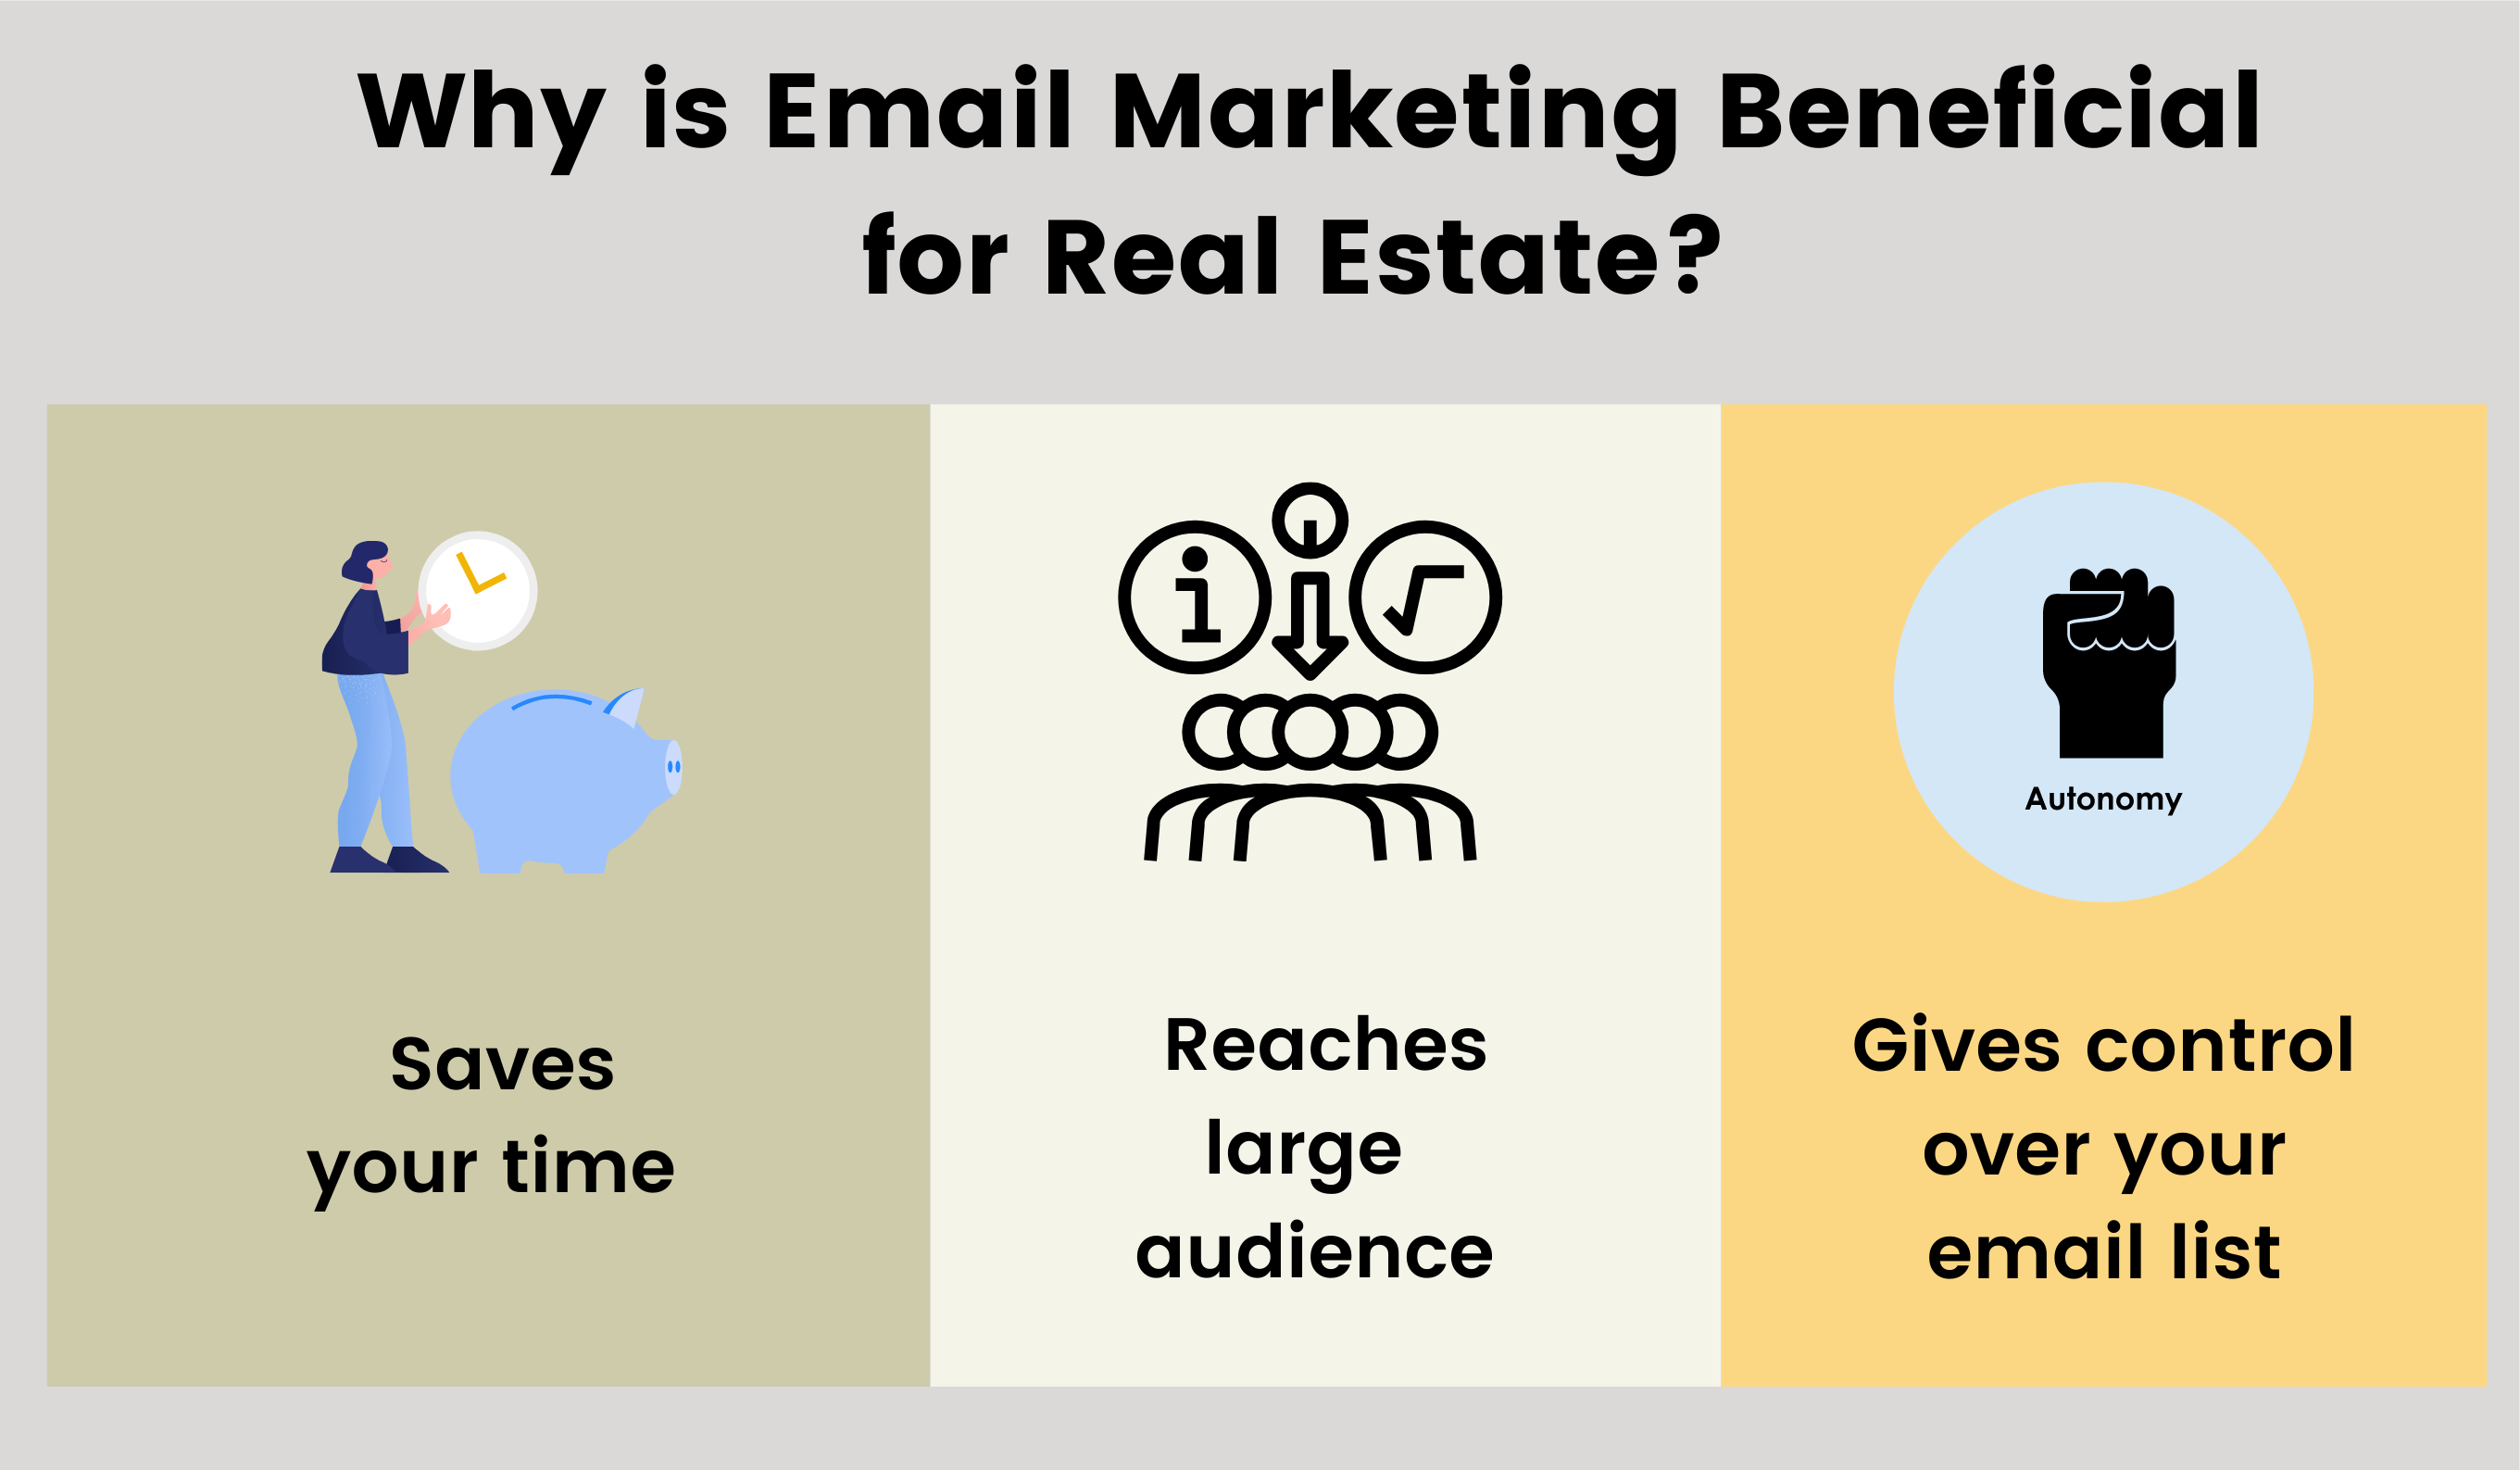 Three reasons why email marketing for real estate is beneficial.